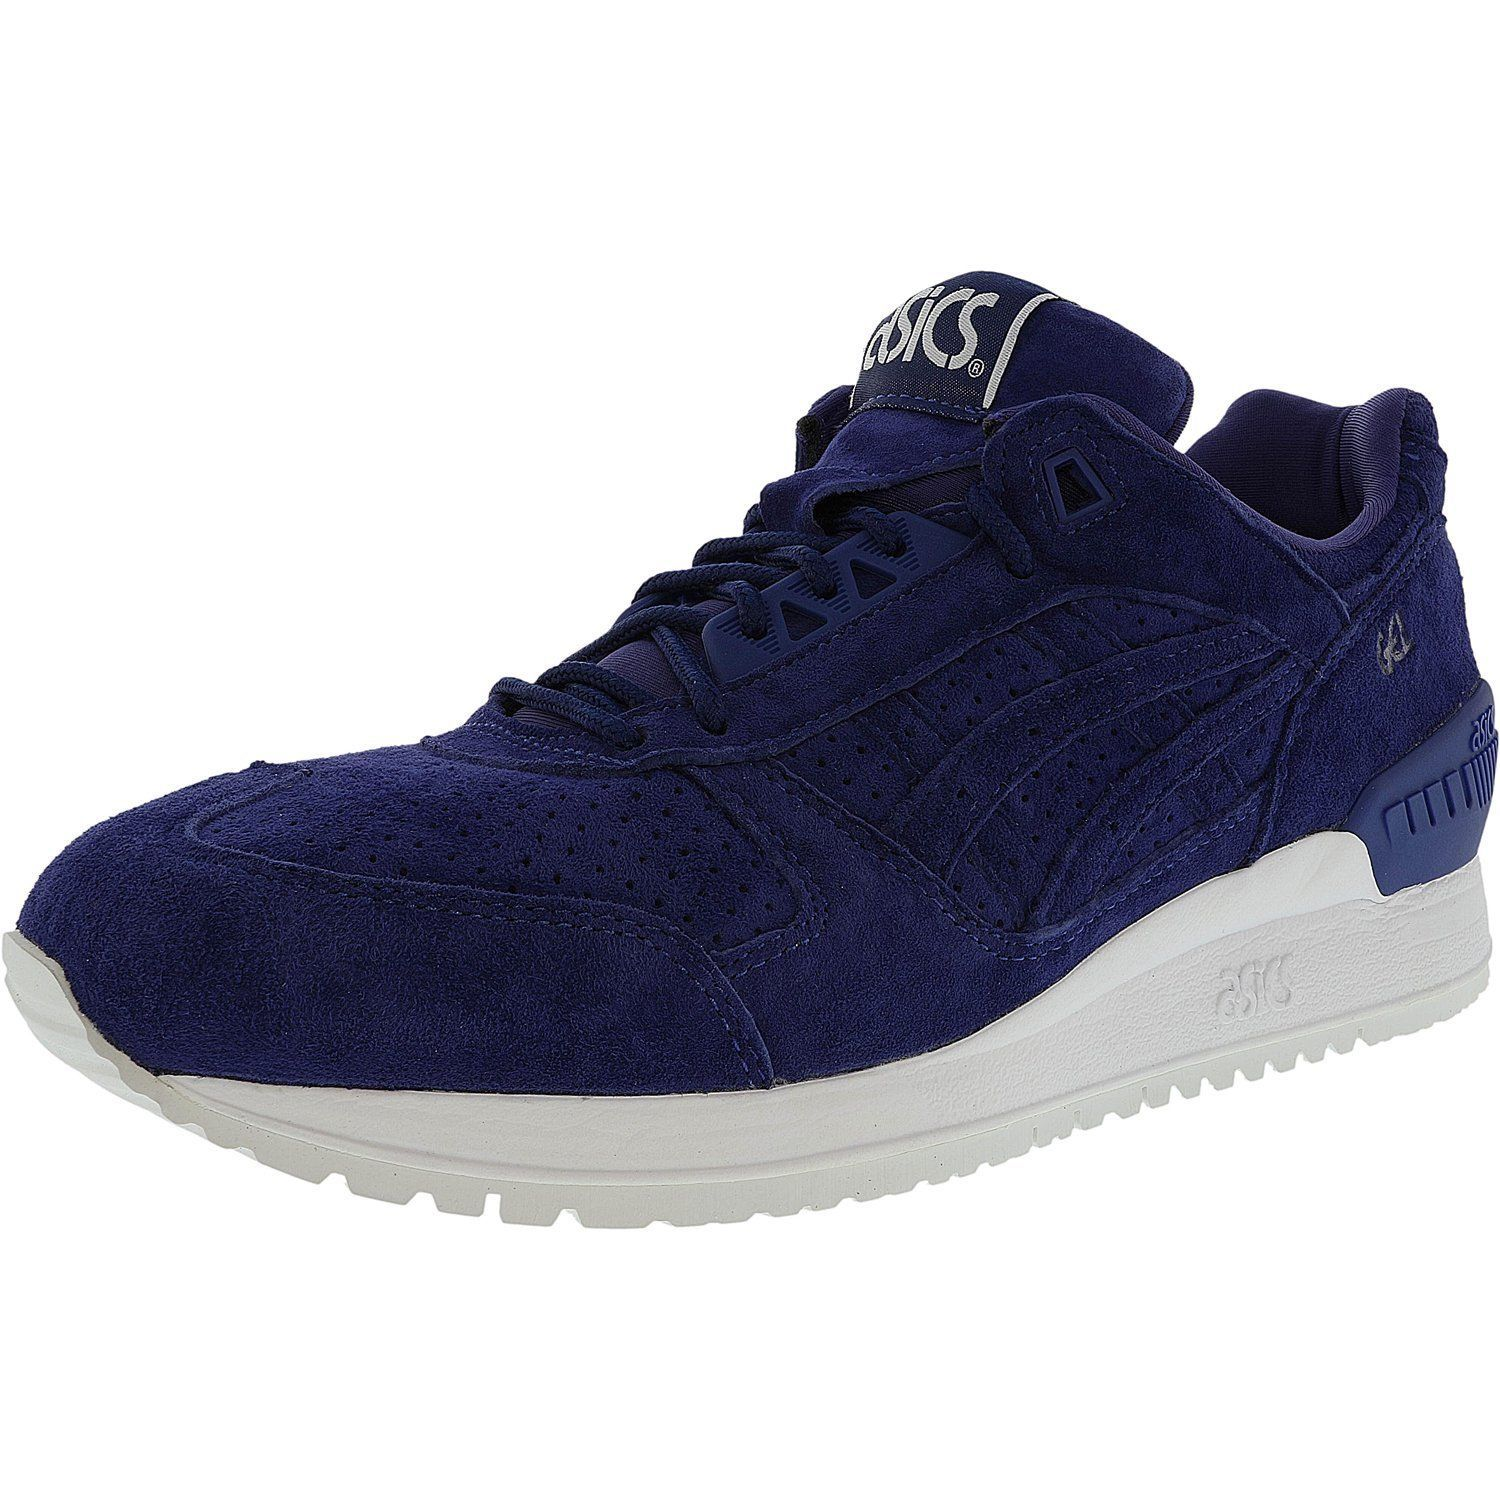 3a5d68775 Asics Men s Gel-Respector Ankle-High Suede Fashion Sneaker